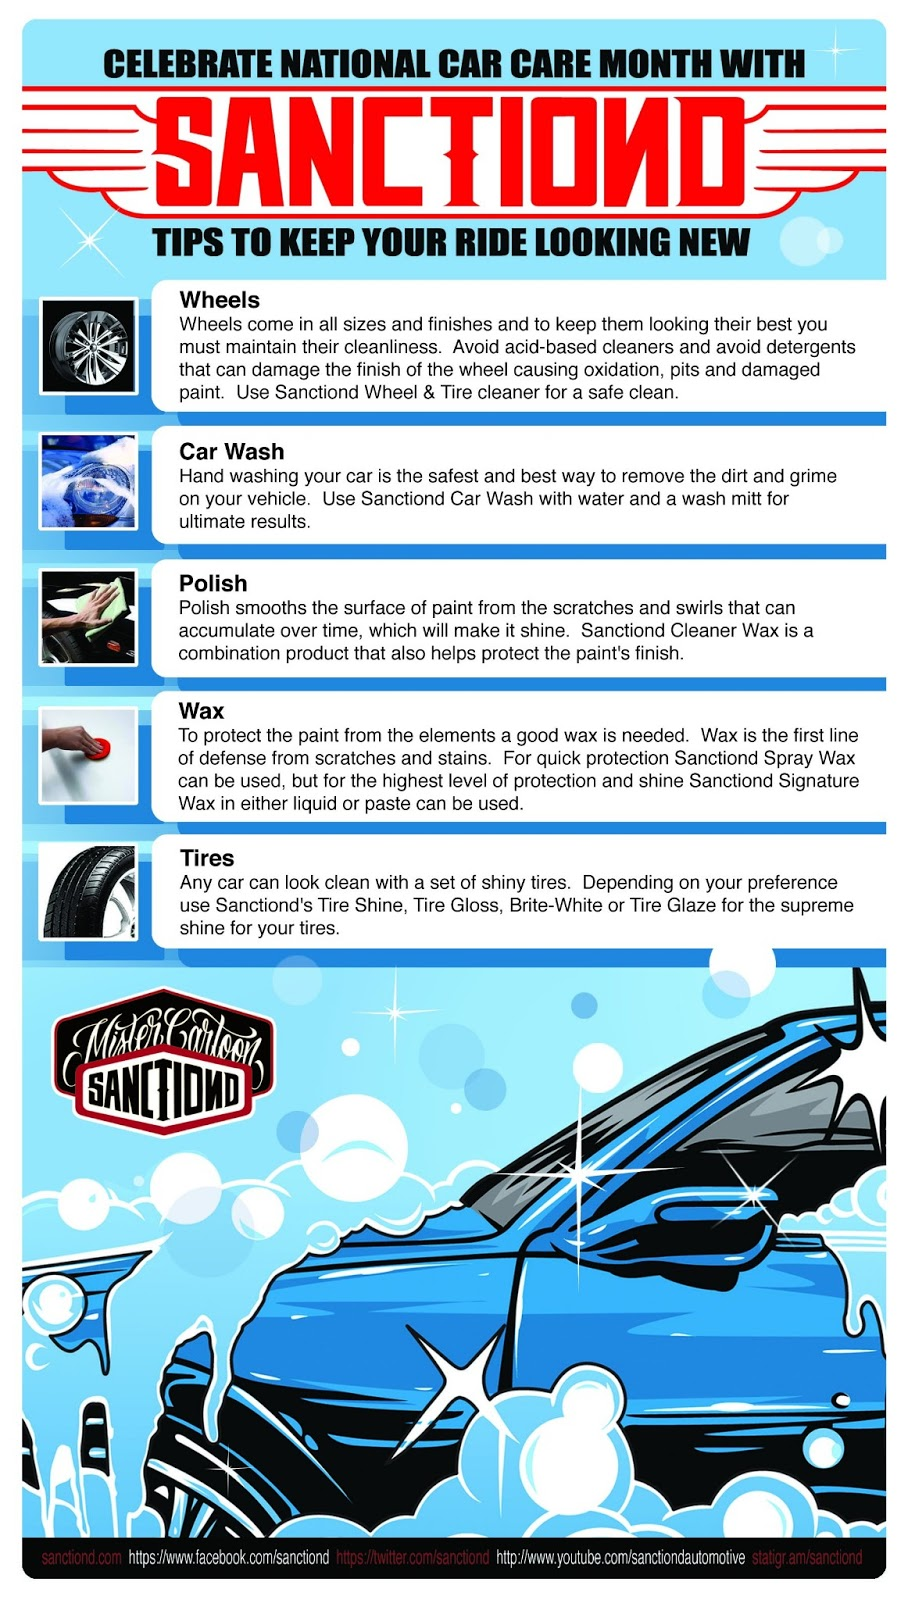 National Car Care Month Infographic By Sanctiond Car News Auto Lah - Car image sign of dashboardmeaning of the warning lights on your dashboard car news auto lah